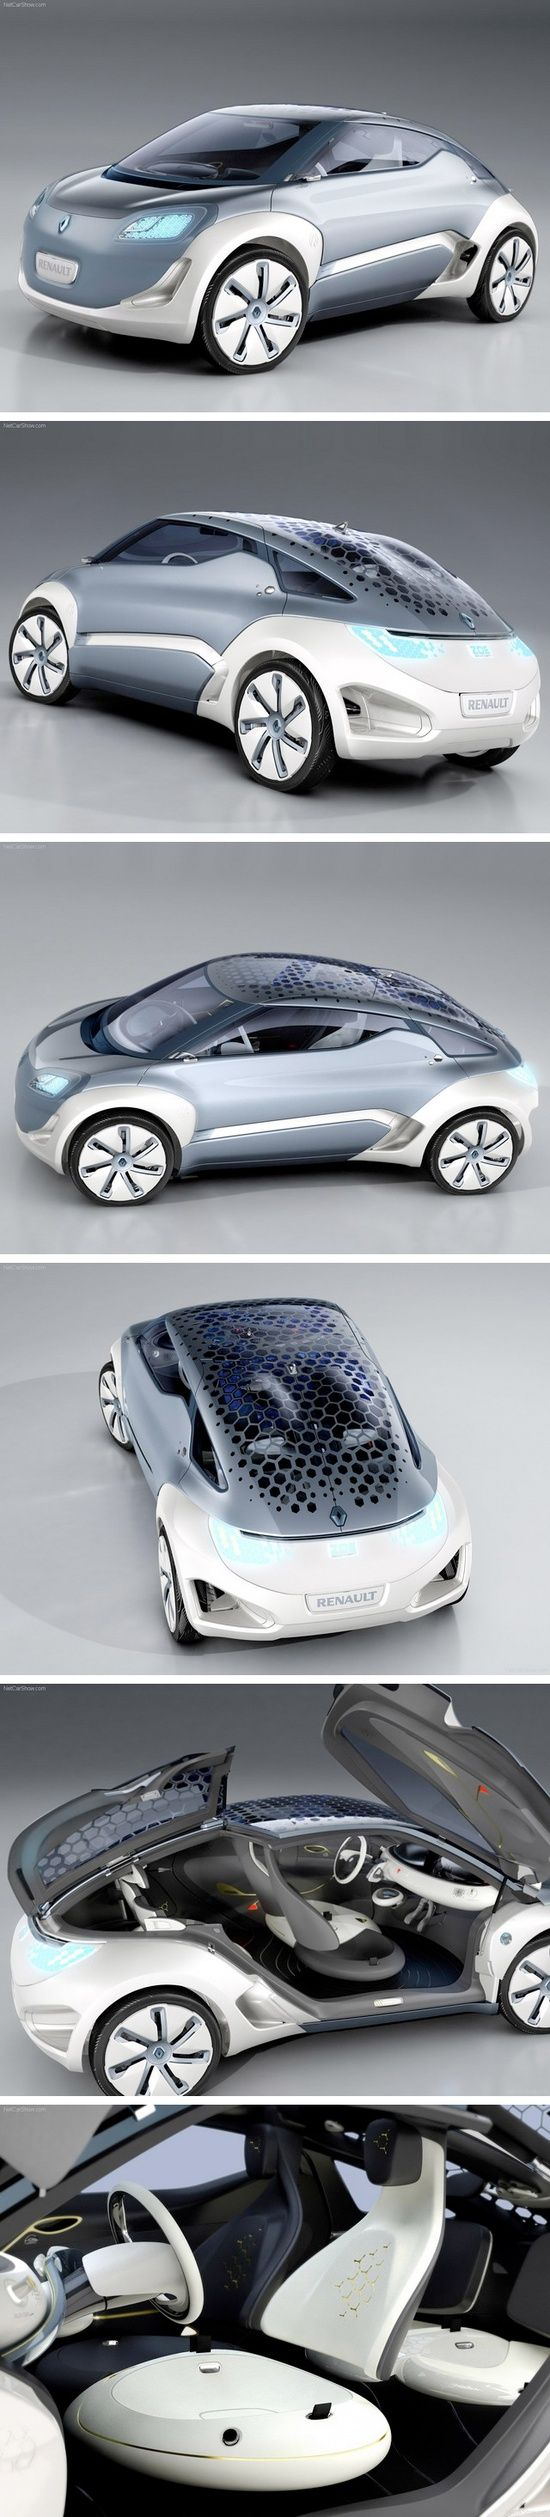 Renault zoe zero emission concept 2009 from http www